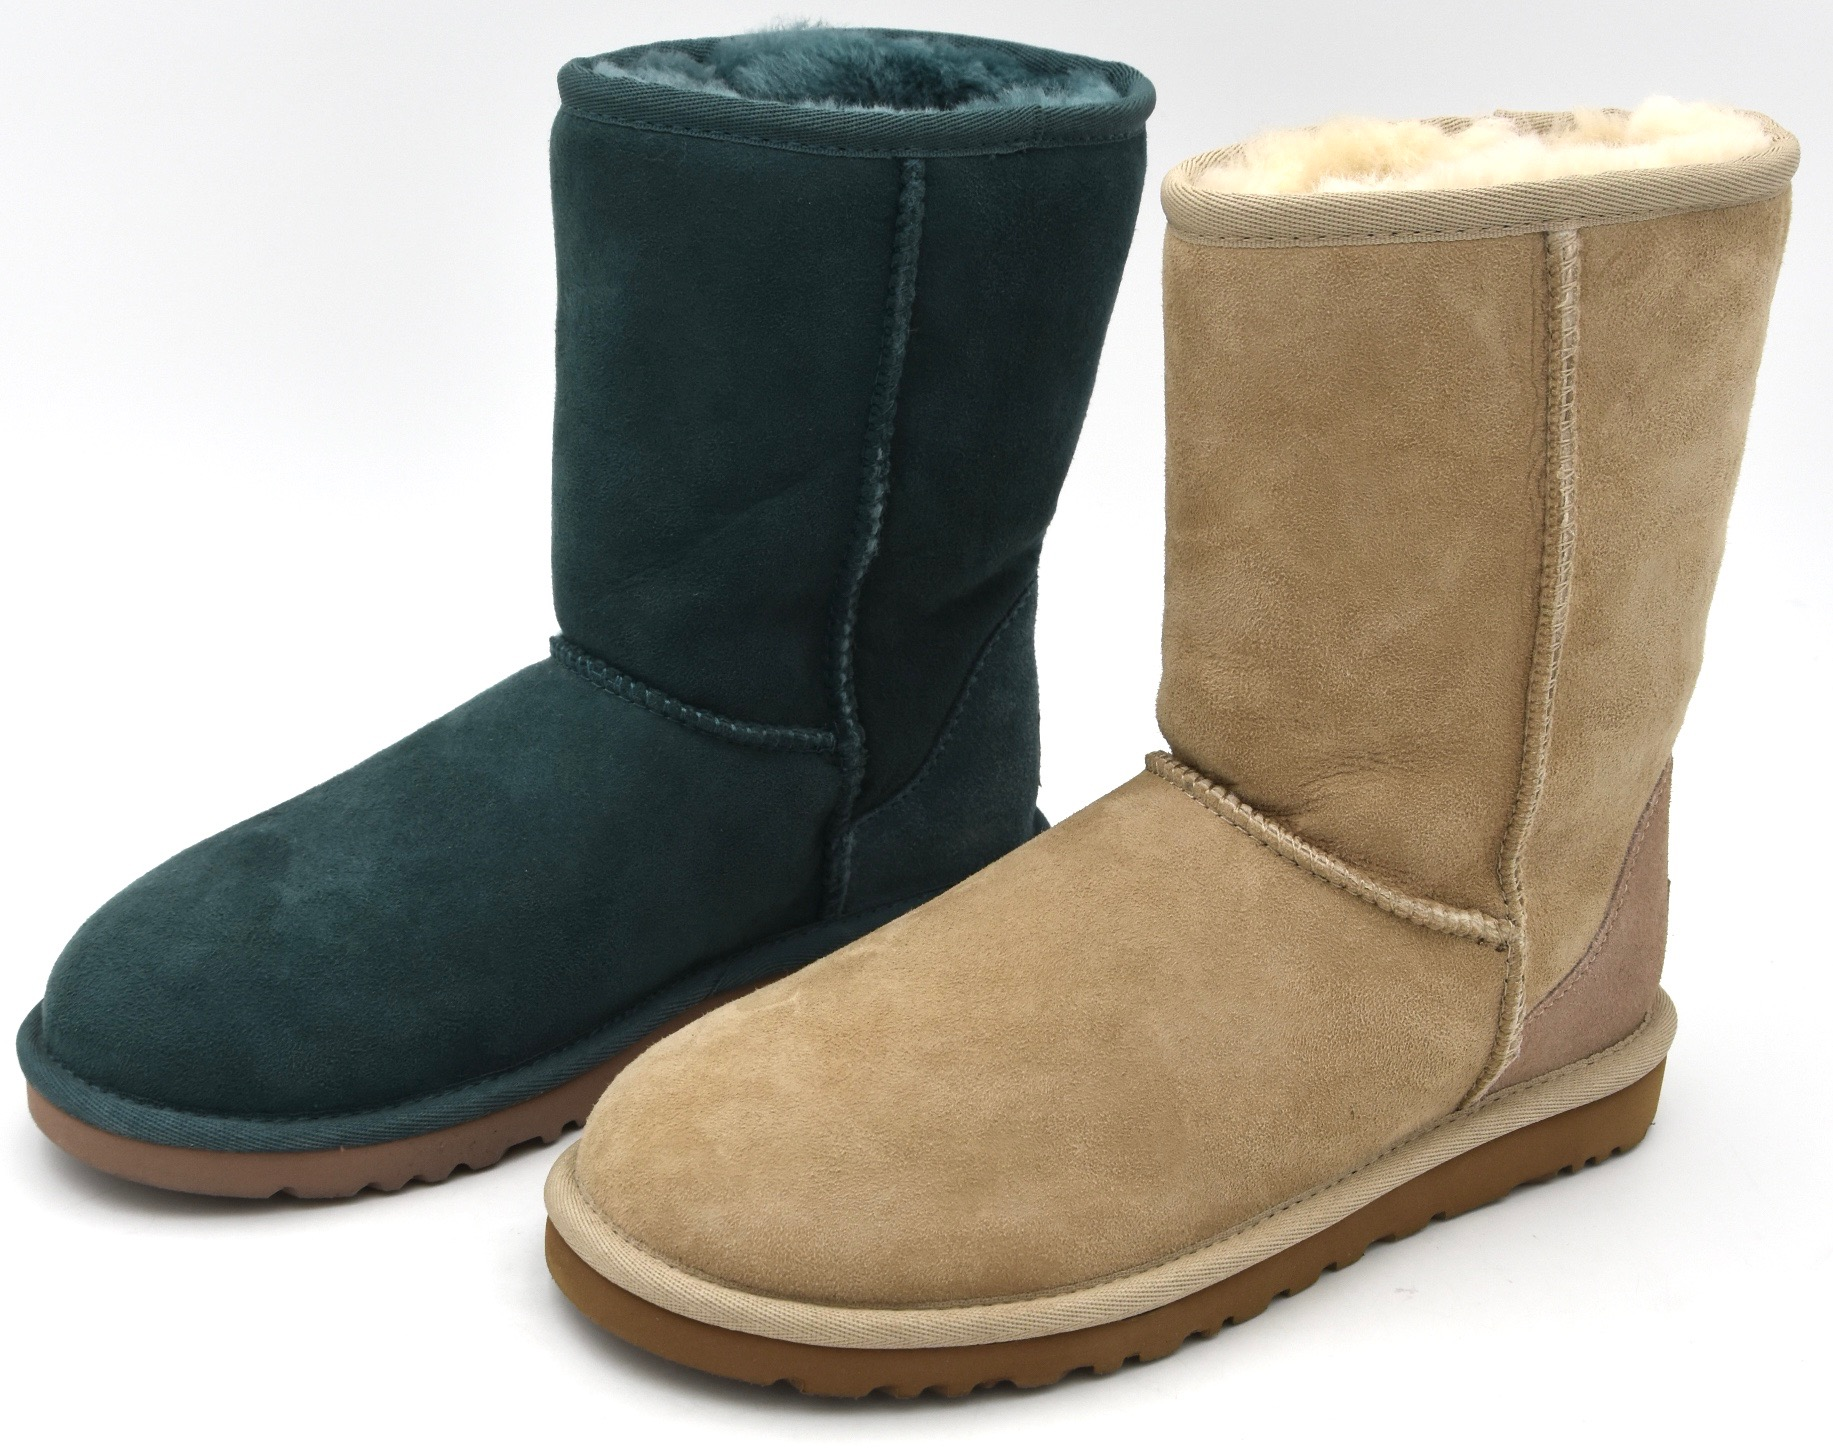 51886a98b24 Details about UGG AUSTRALIA WOMAN ANKLE BOOTS BOOTIES WINTER SUEDE CODE W  CLASSIC SHORT 5825 W